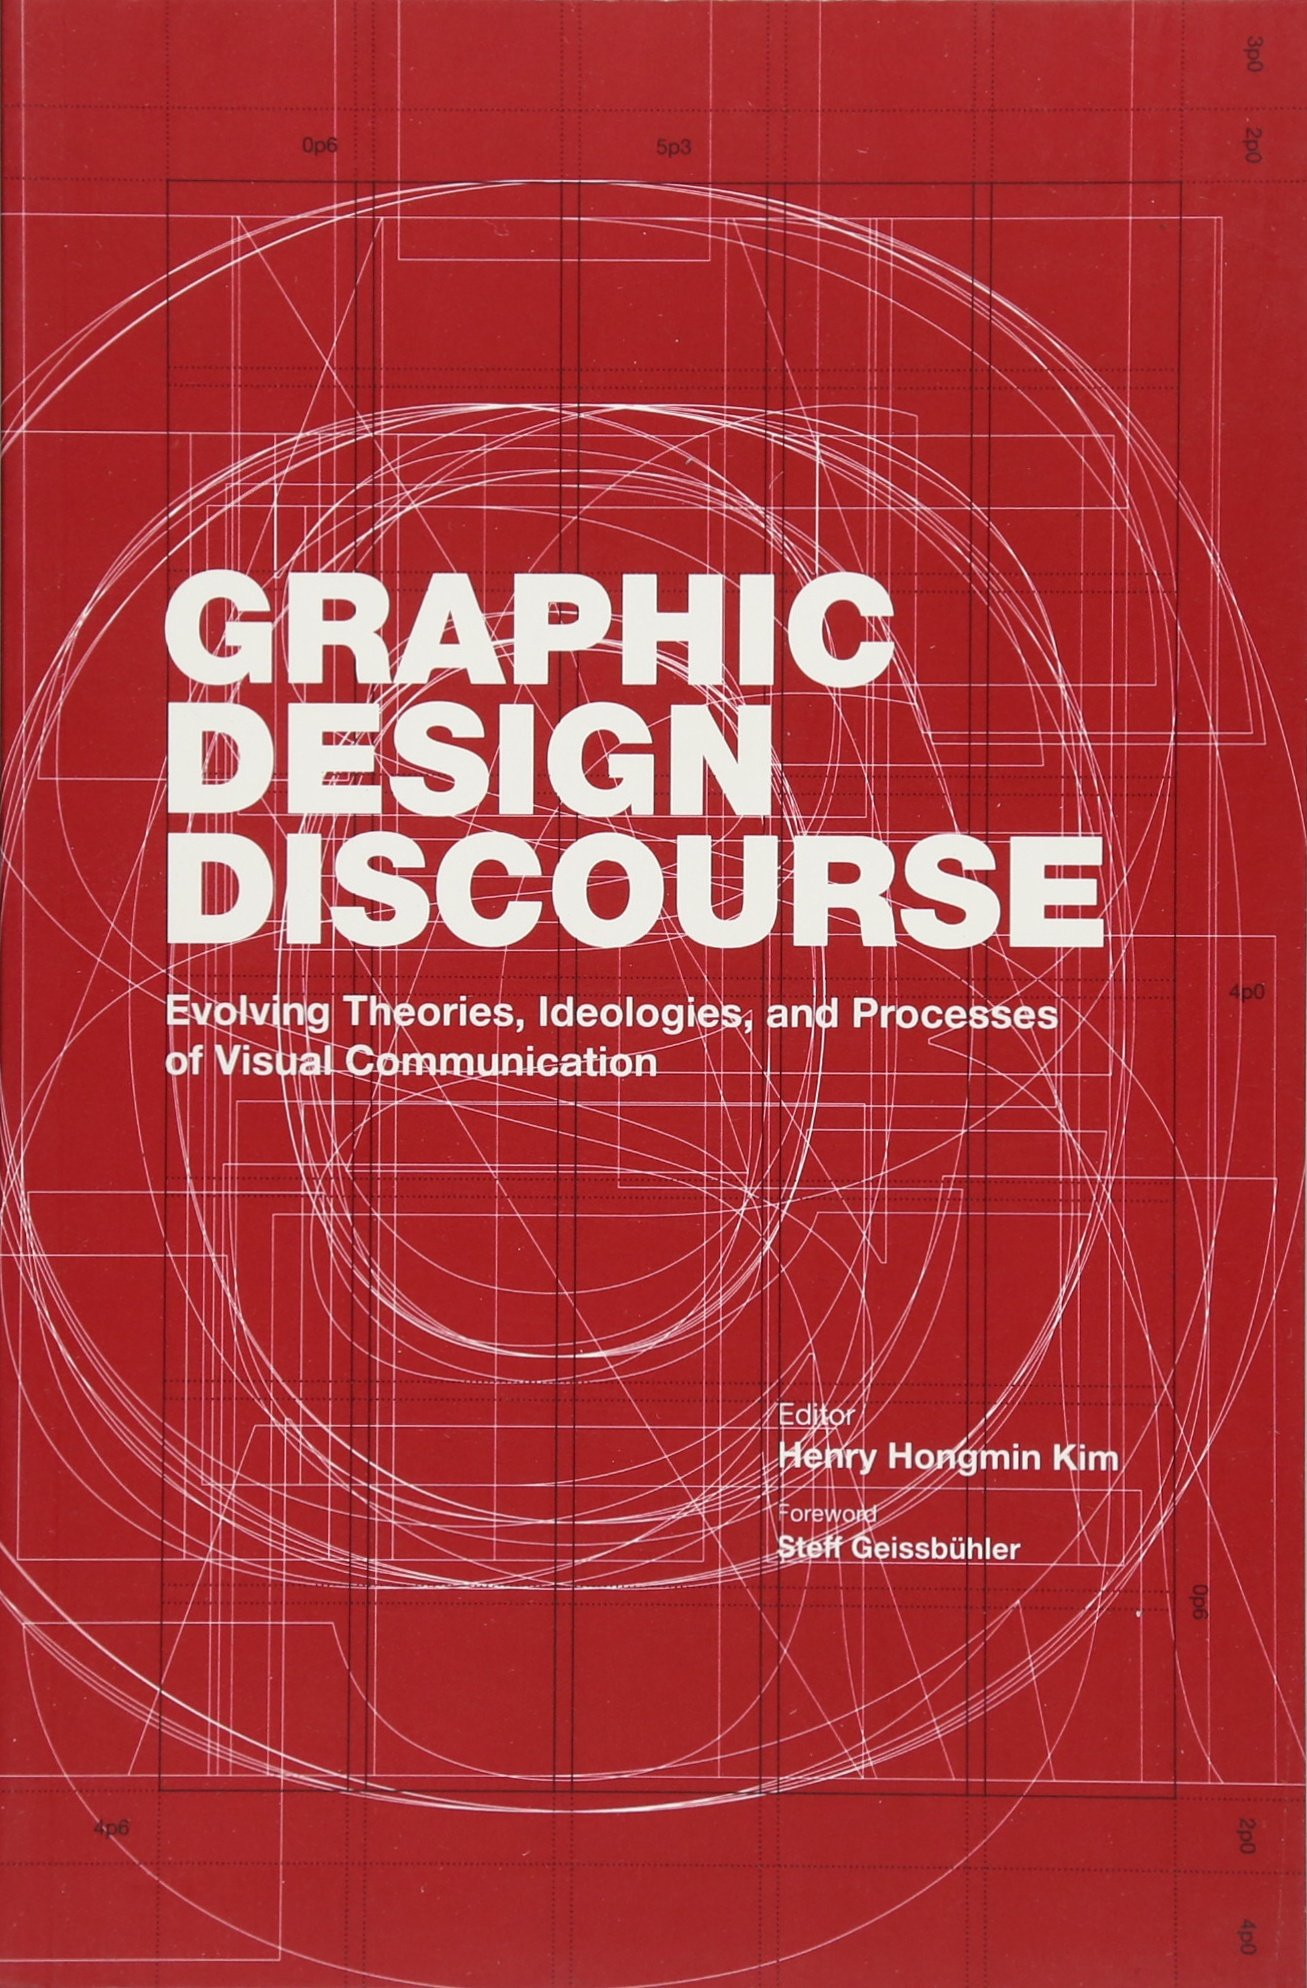 Graphic Design Discourse Evolving Theories Ideologies And Processes Of Visual Communication Academic Reader With 75 Seminal Texts Across Disciplines Kim Henry Hongmin Geissbuhler Steff 9781616895587 Amazon Com Books